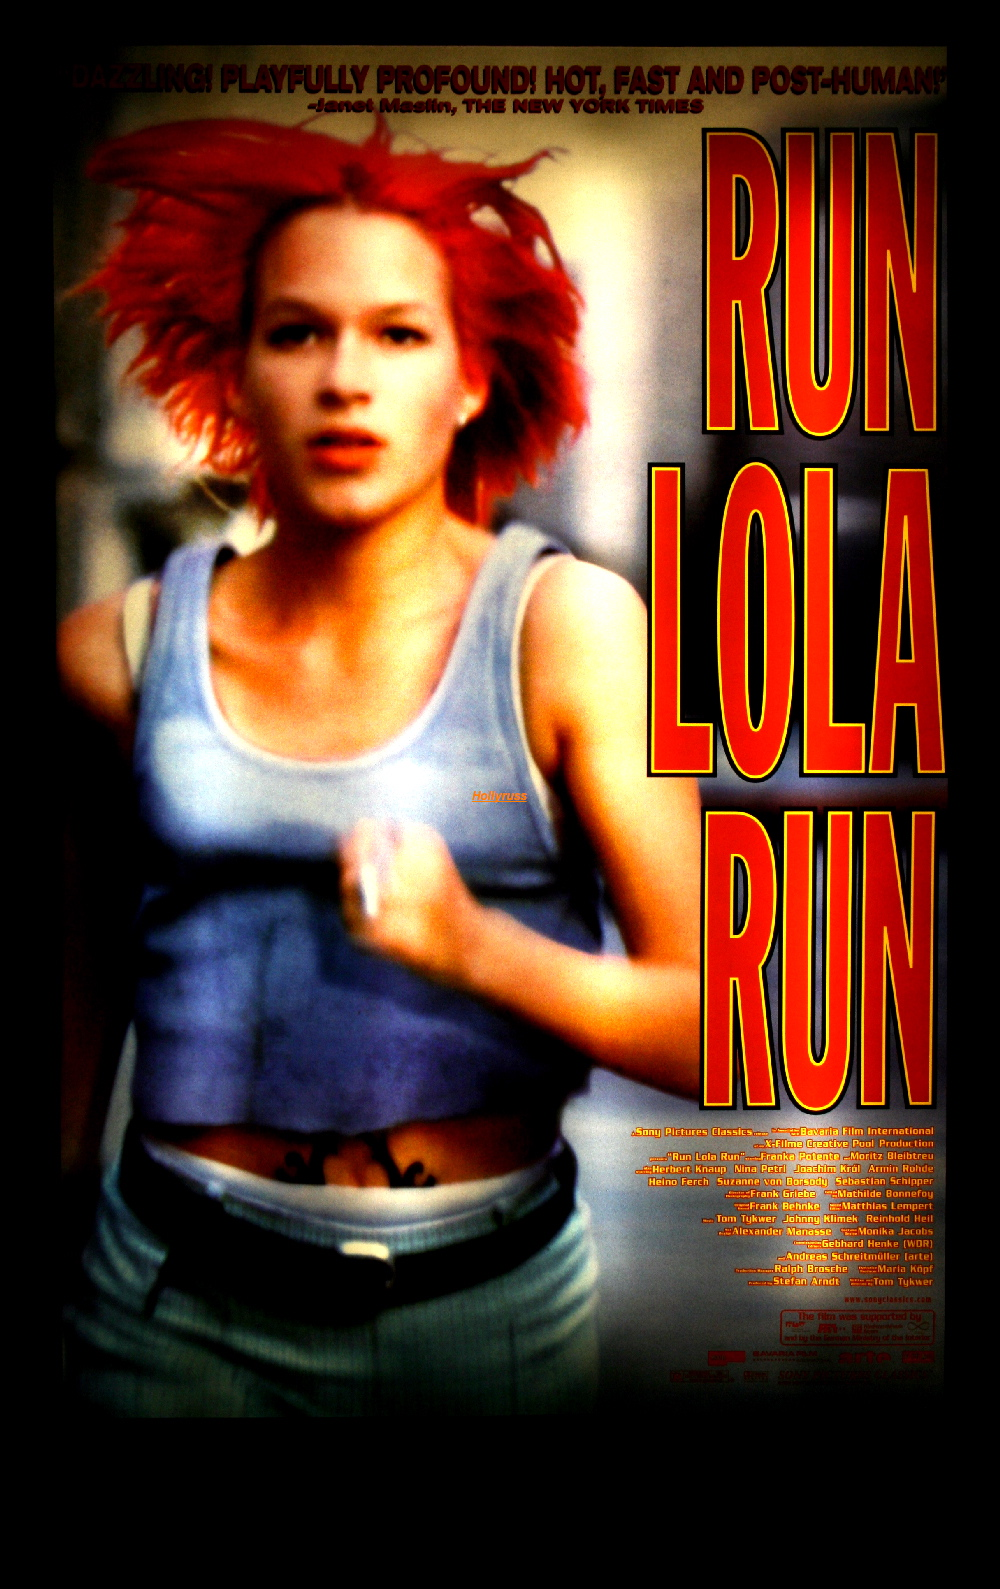 Run Lola Run review